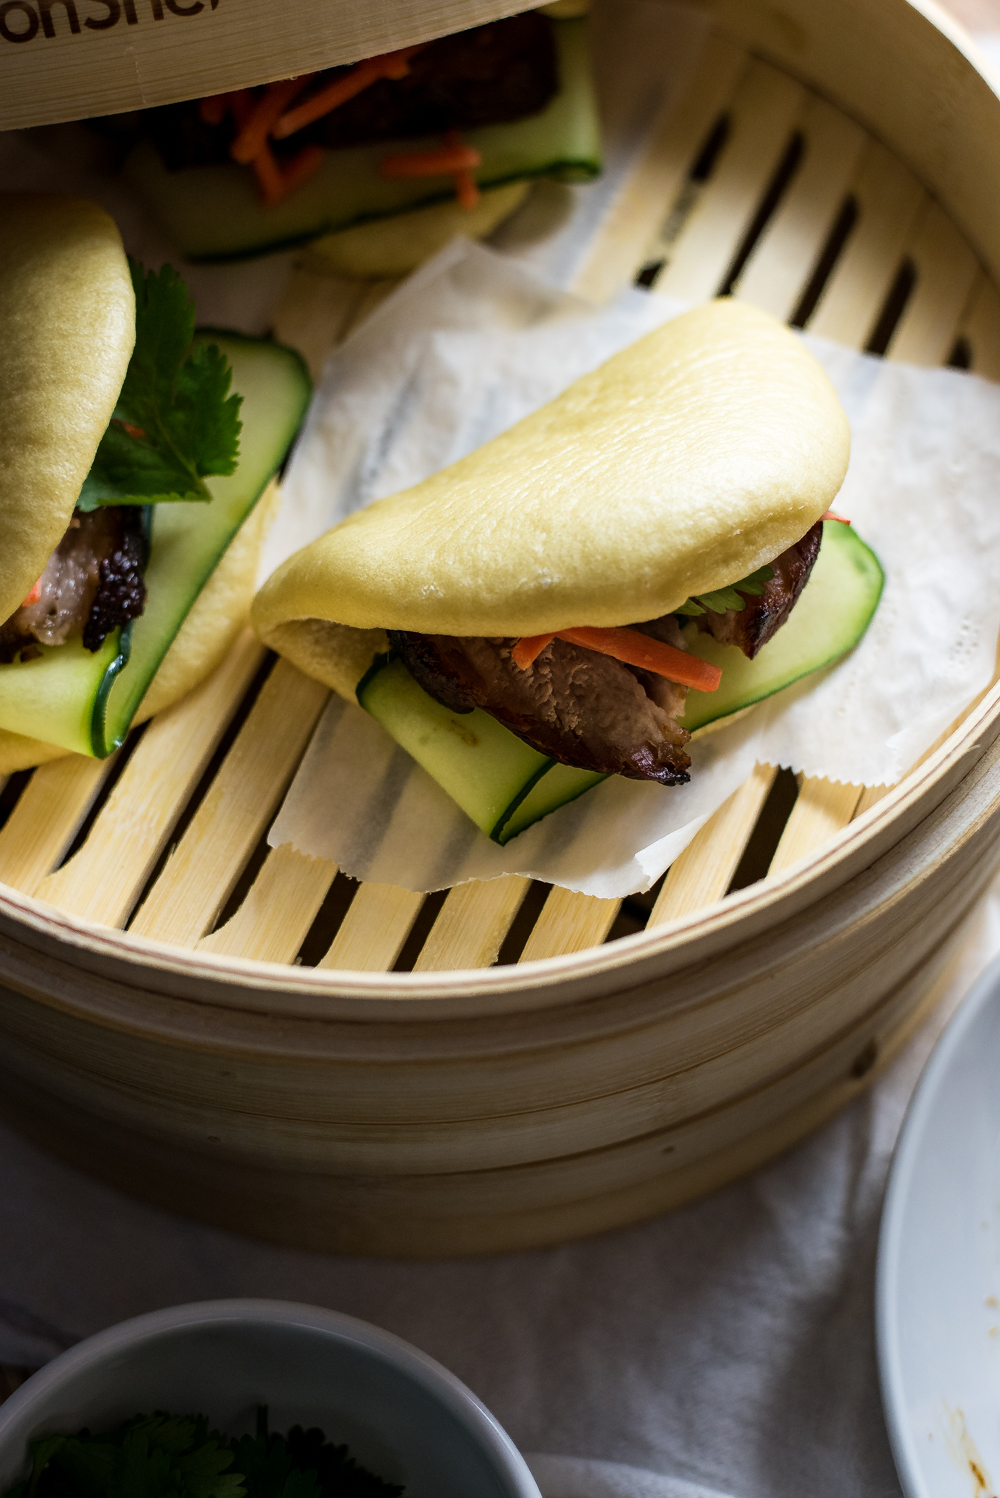 Taiwanese Braised BBQ Pork Belly Steamed Buns (Gua bao) don't have to be daunting to make! This simpler Gua bao recipe is perfect for holiday entertaining!